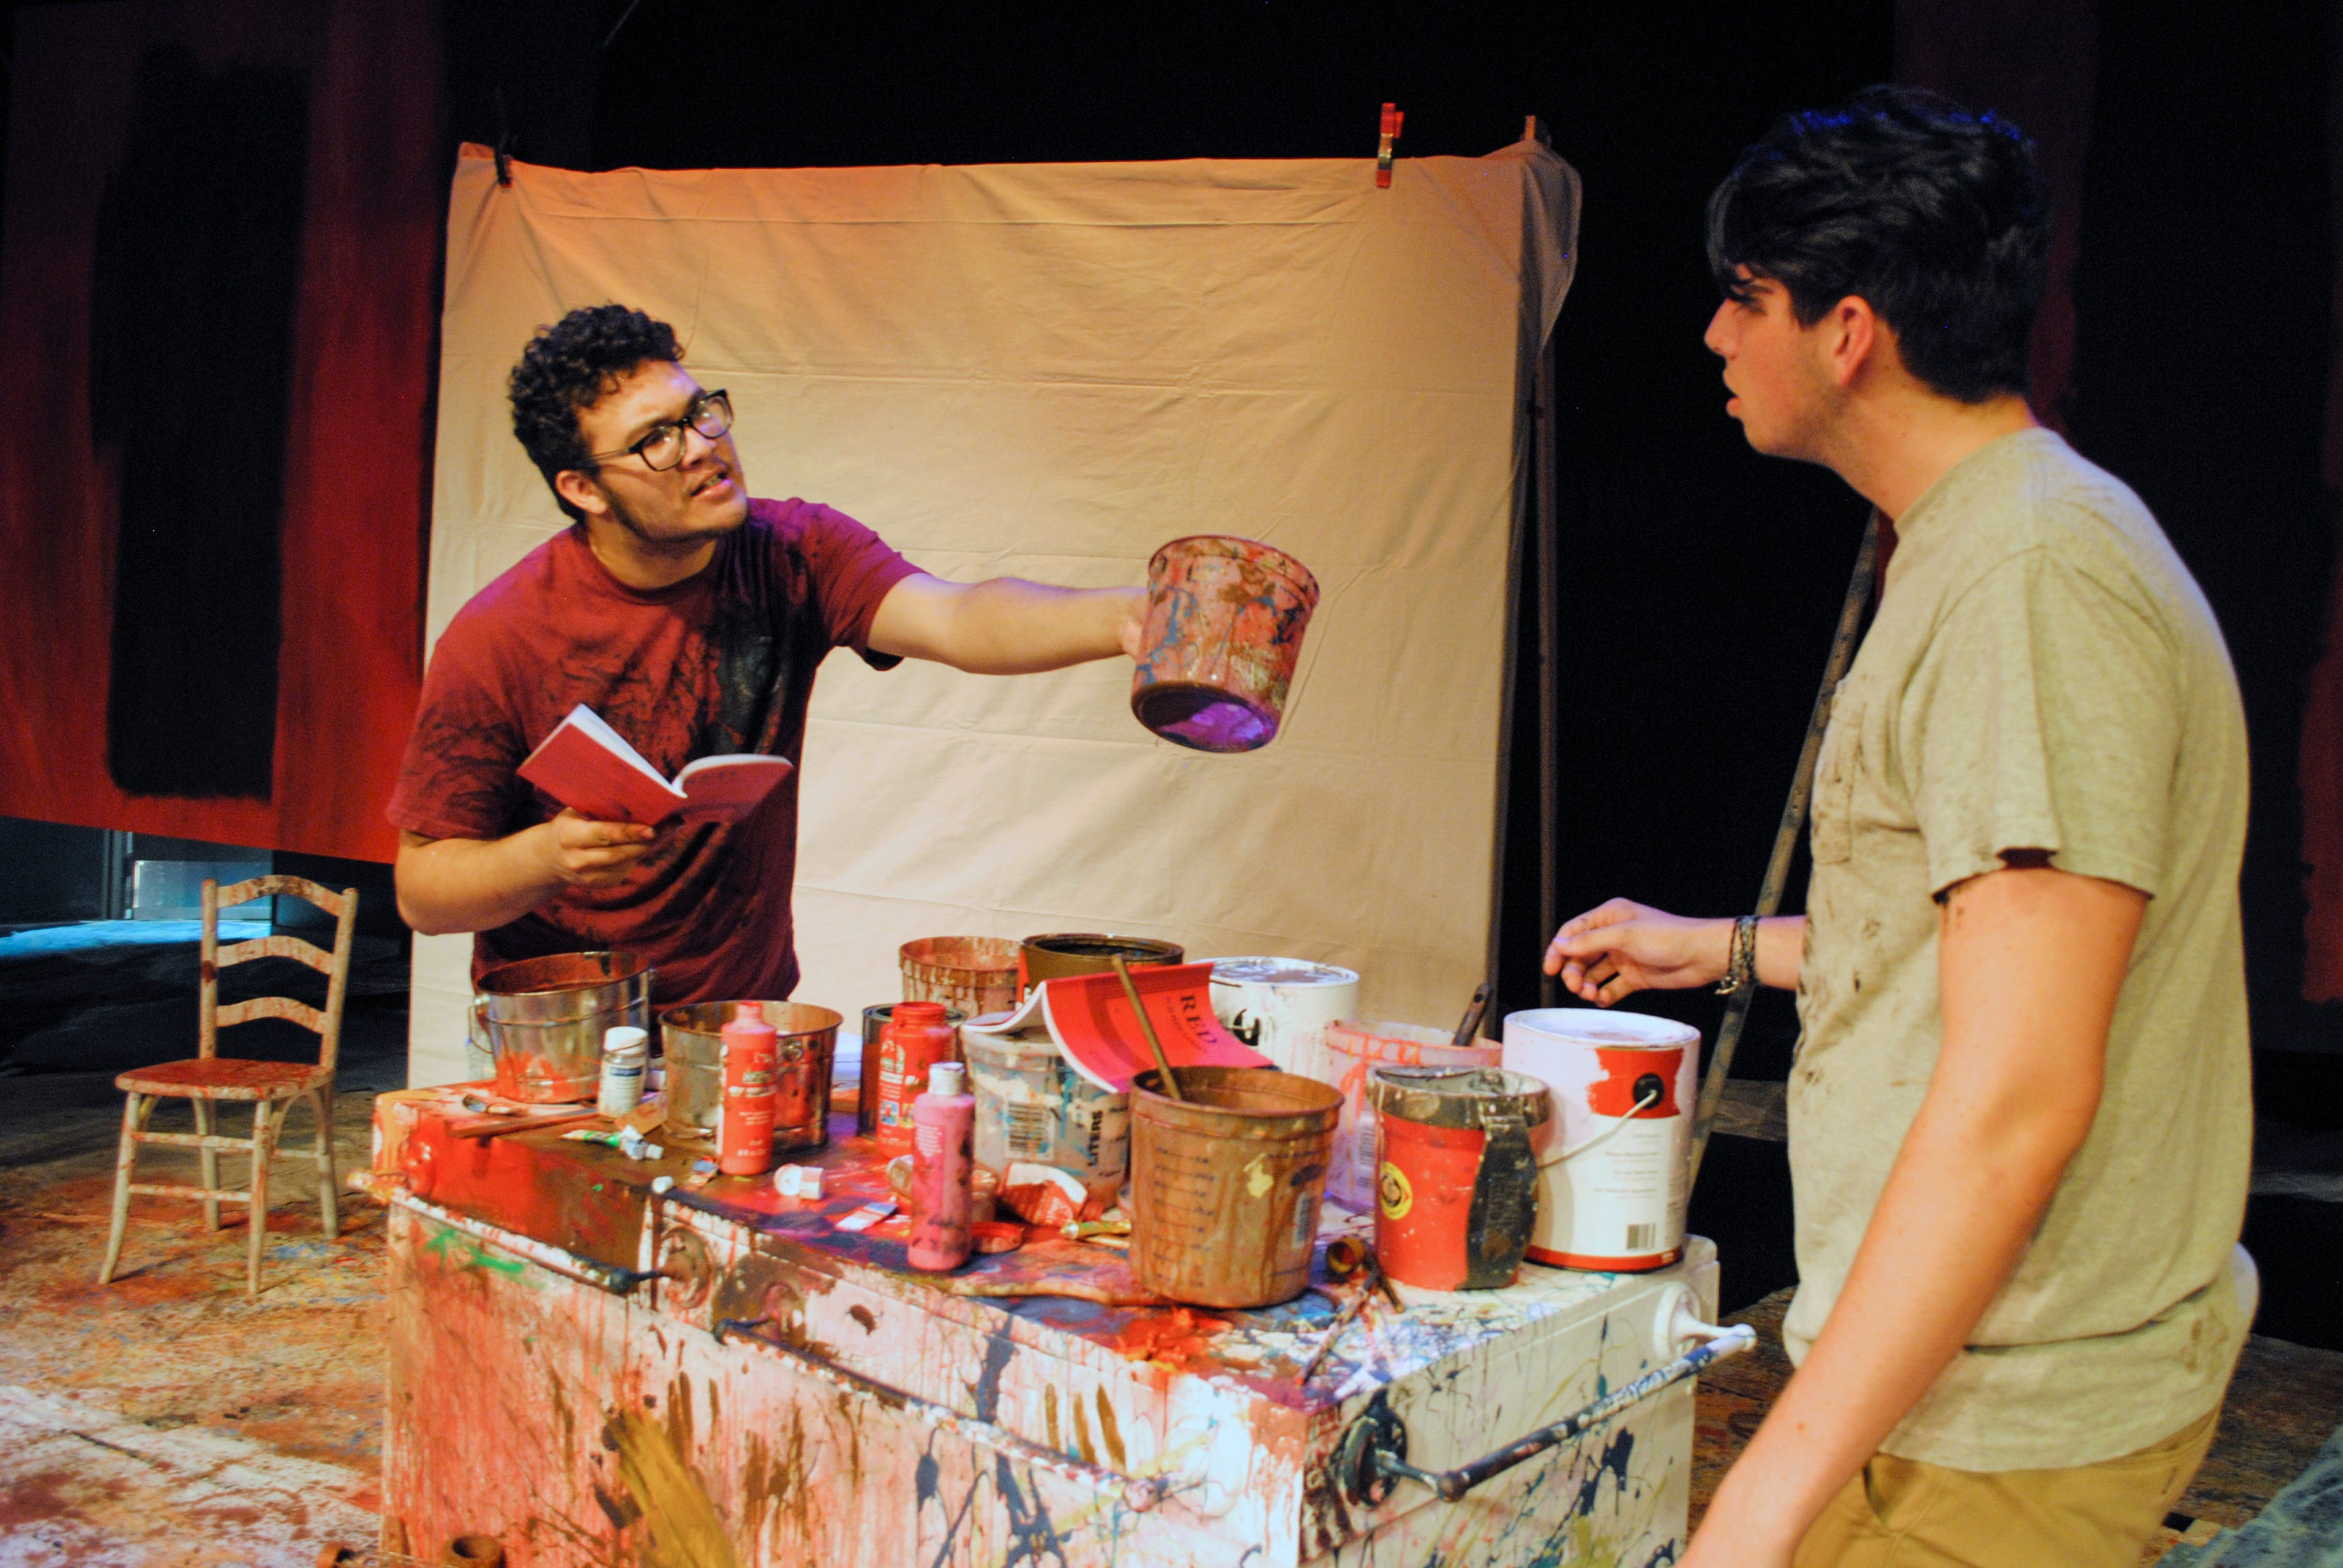 636644792234735870-RED-1 On stage at Eastern Florida State College in Cocoa? 'Red,' a Tony Award-winning play